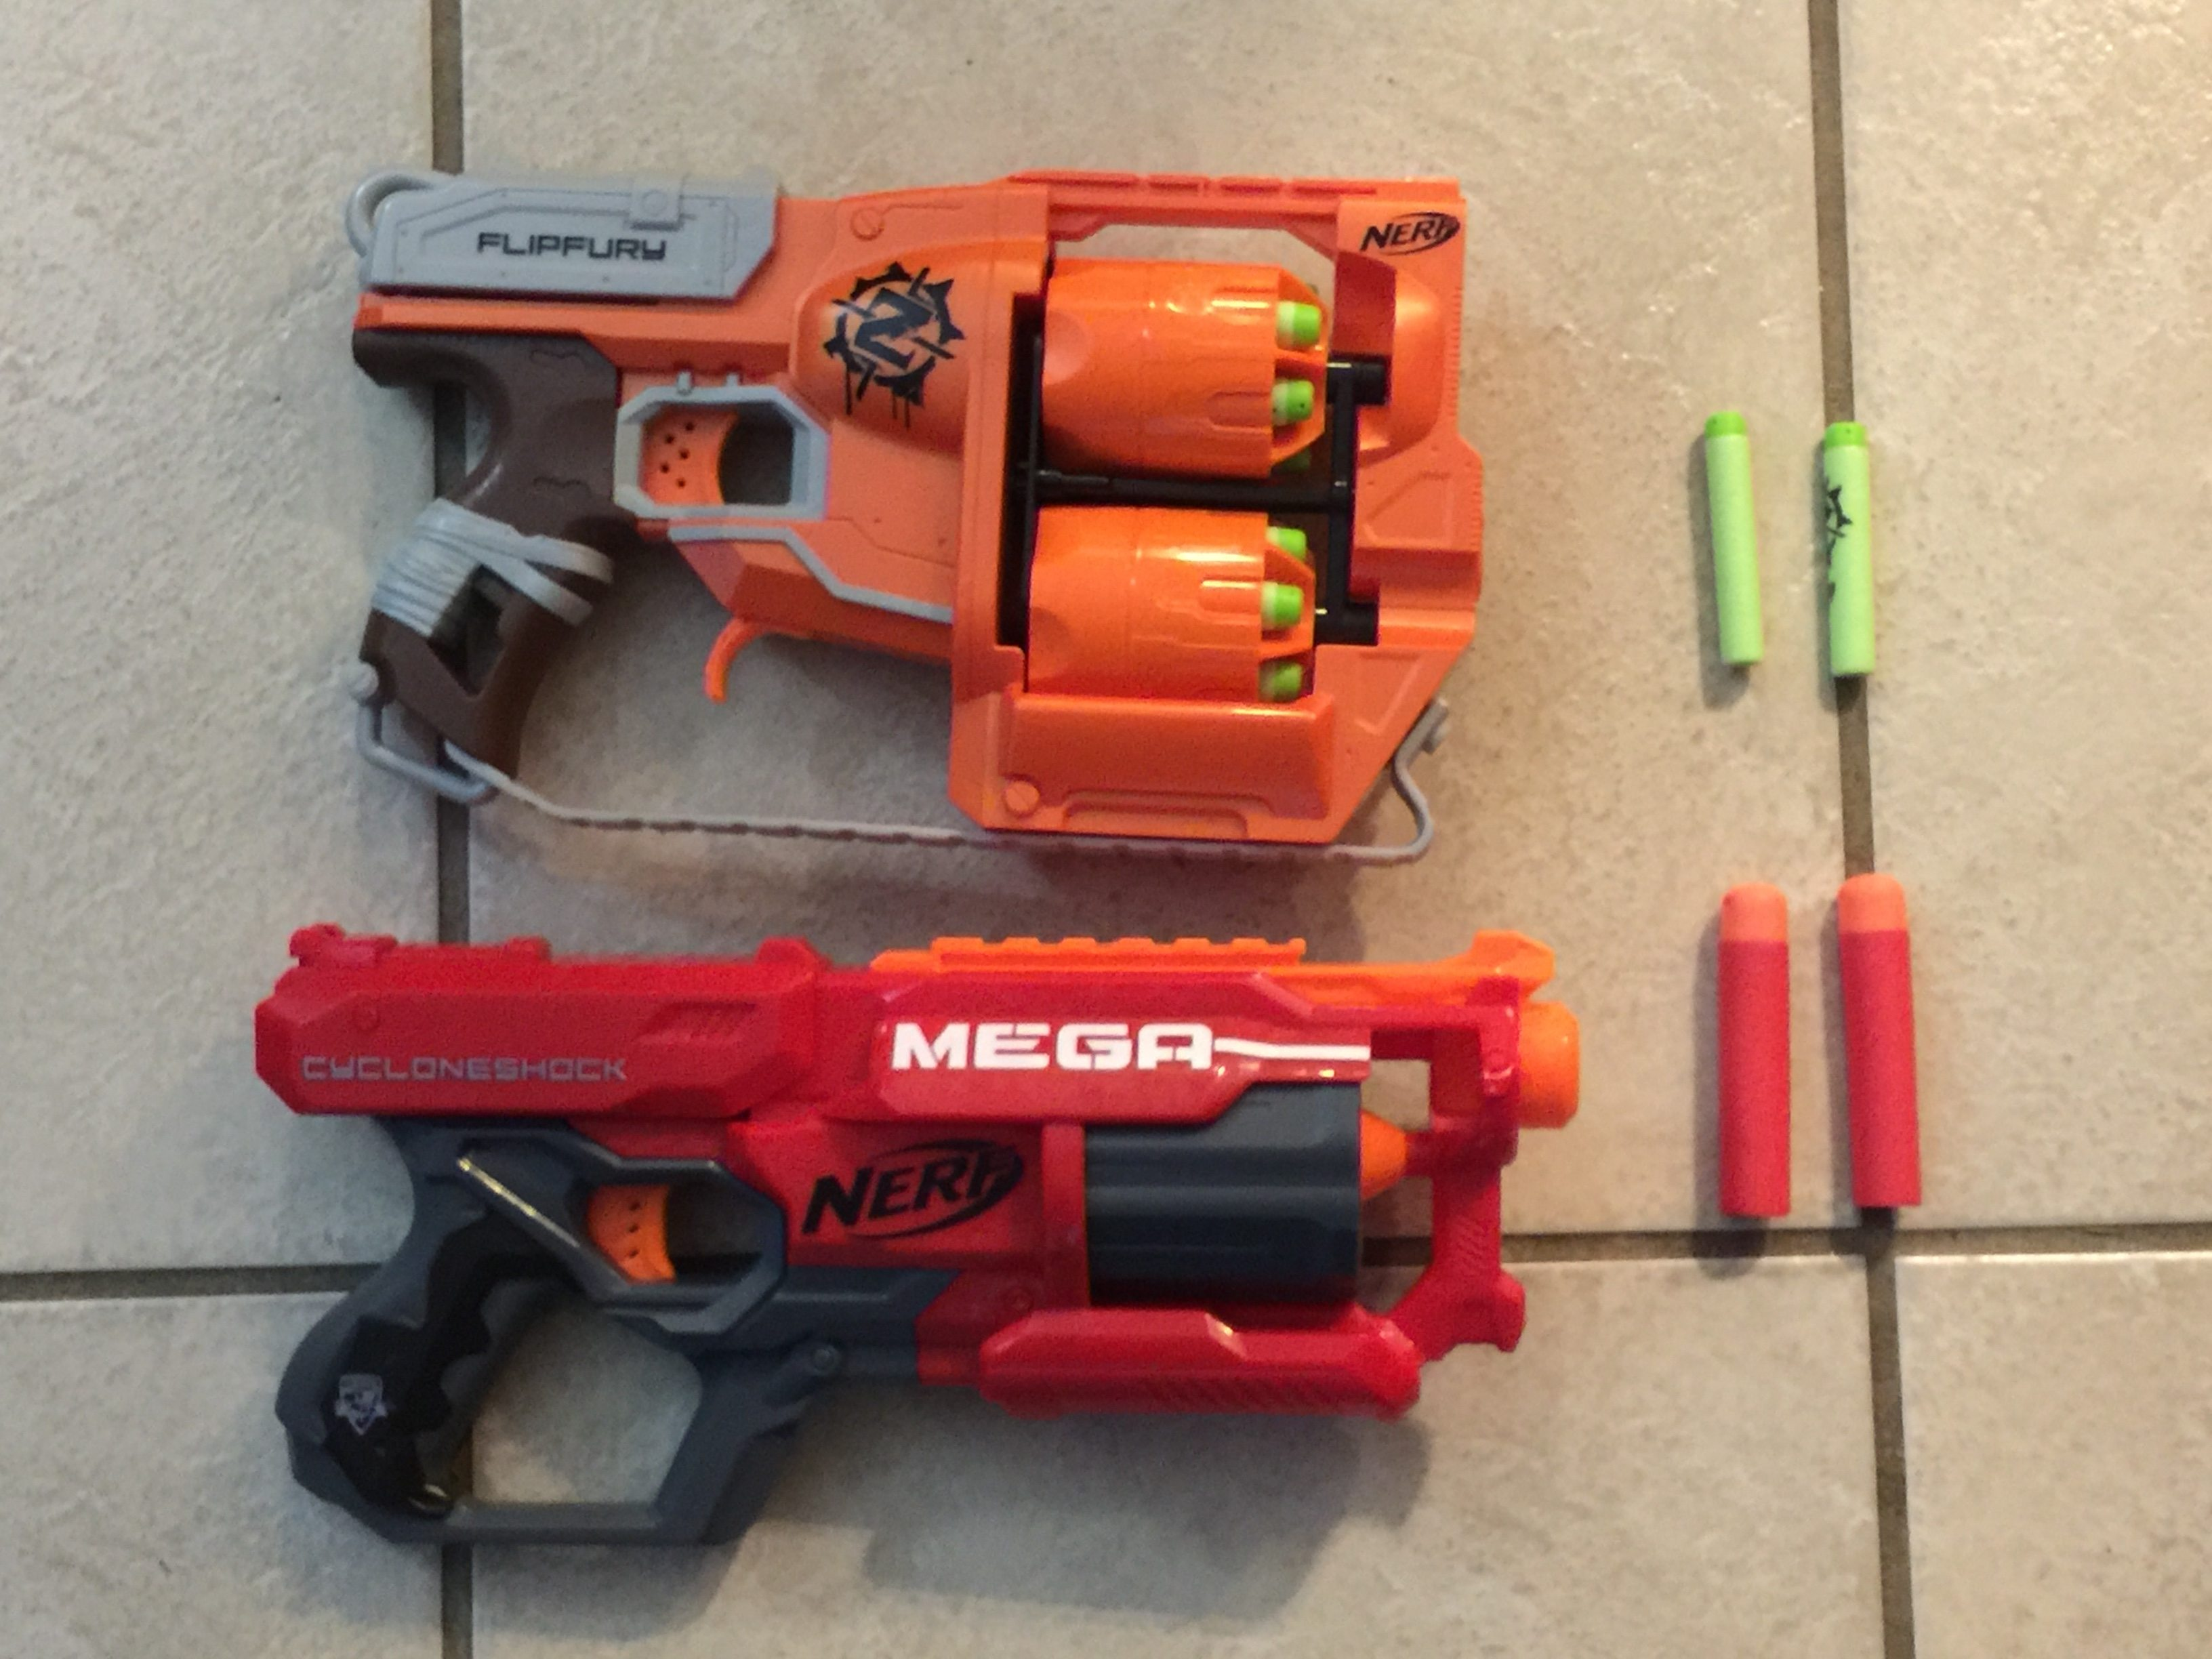 It's NERF or nothing in this house.  Image: Dakster Sullivan